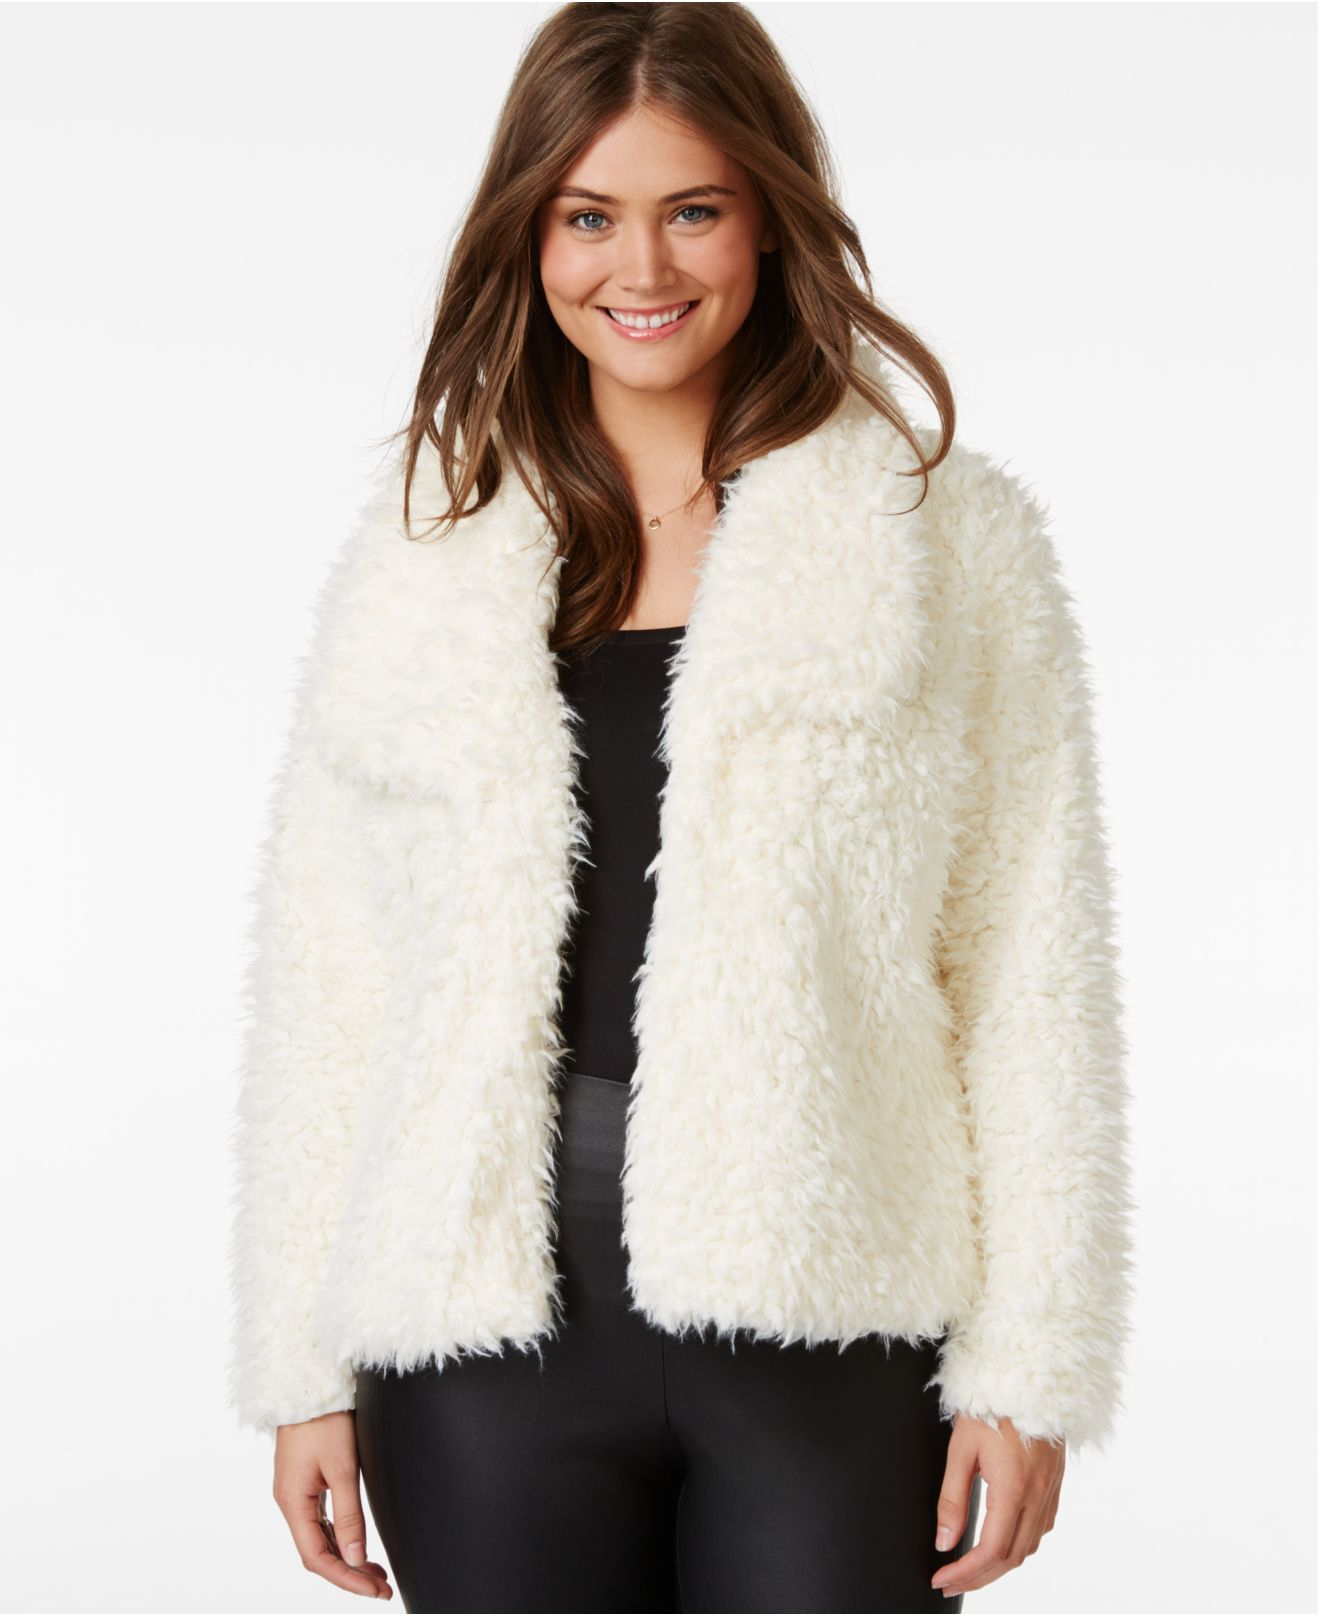 20 Style Tips On How To Wear A Fur Vest